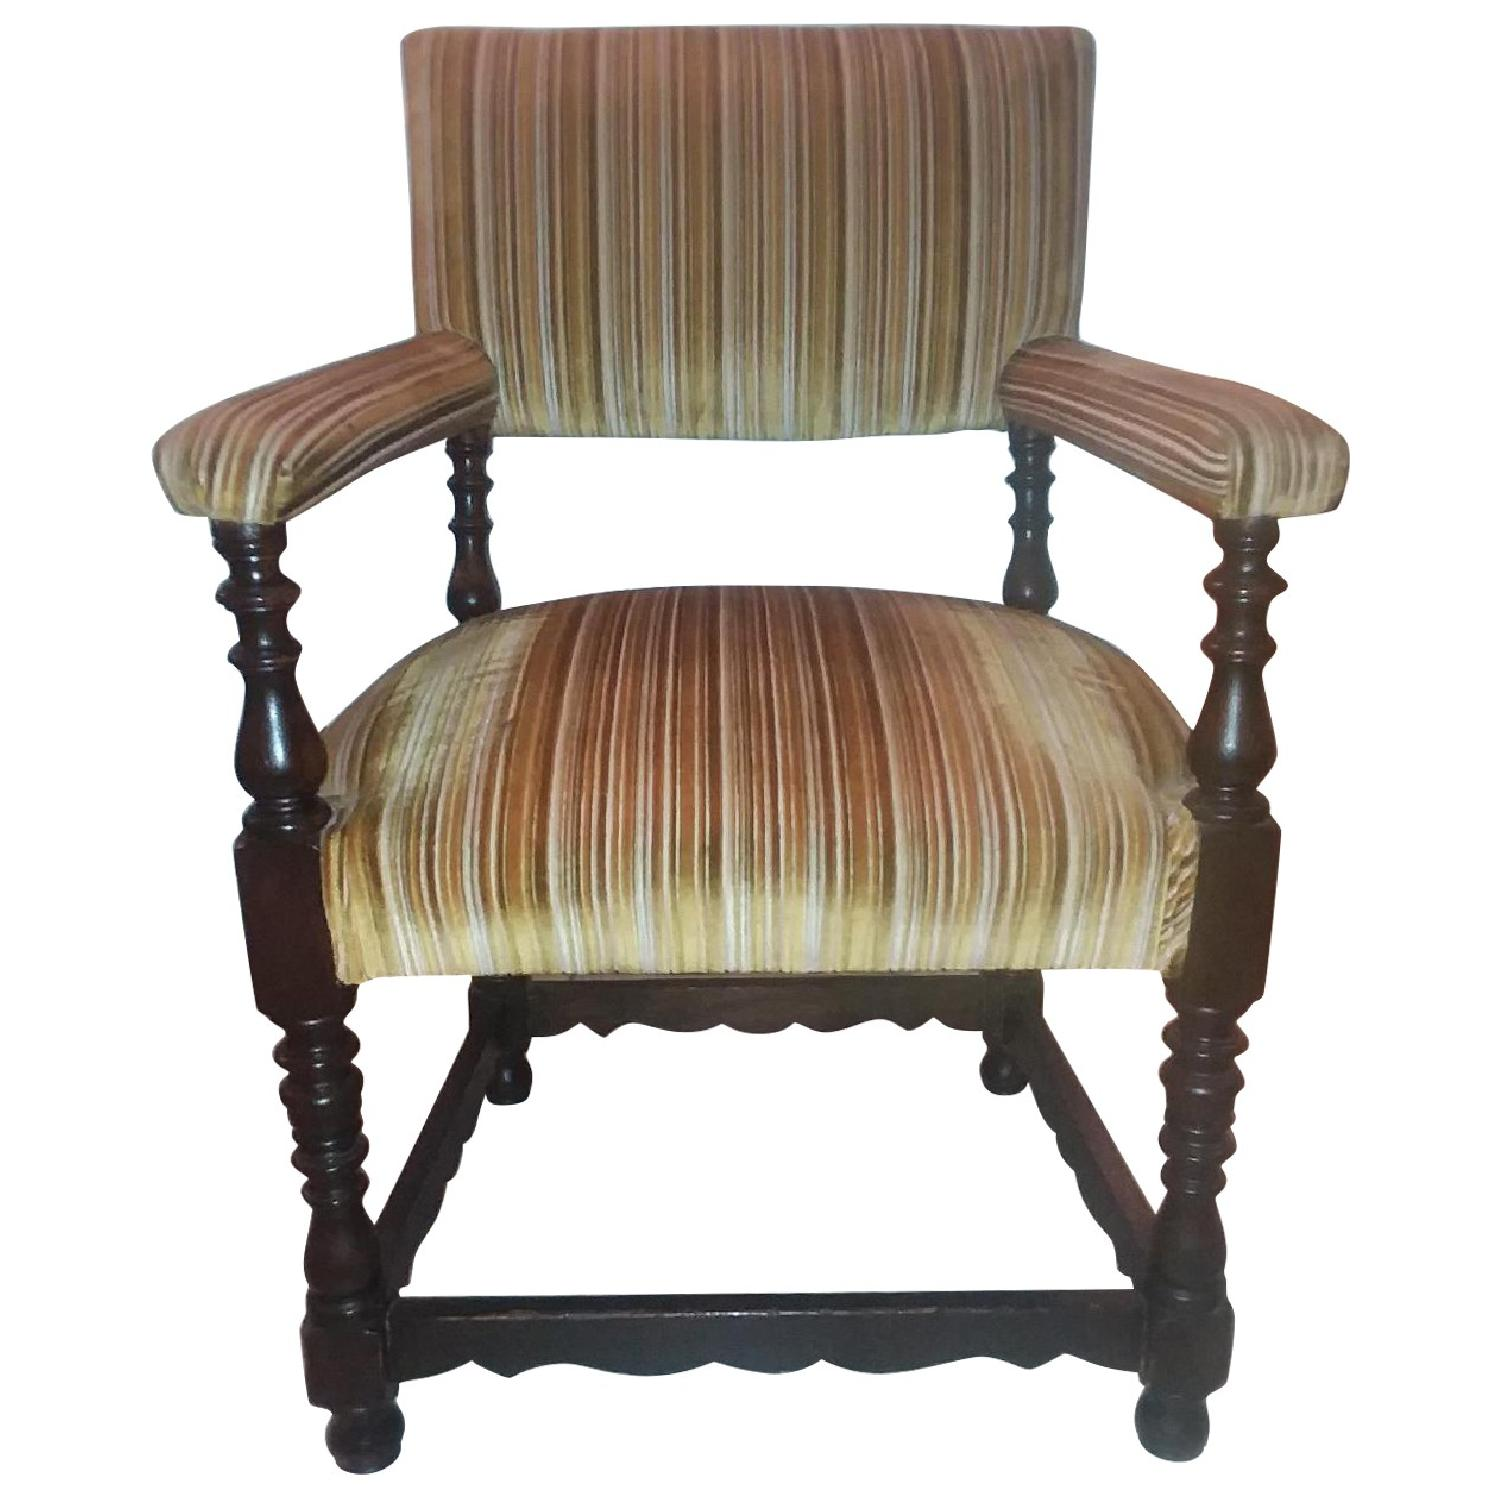 Vintage Provincial Chairs - image-0